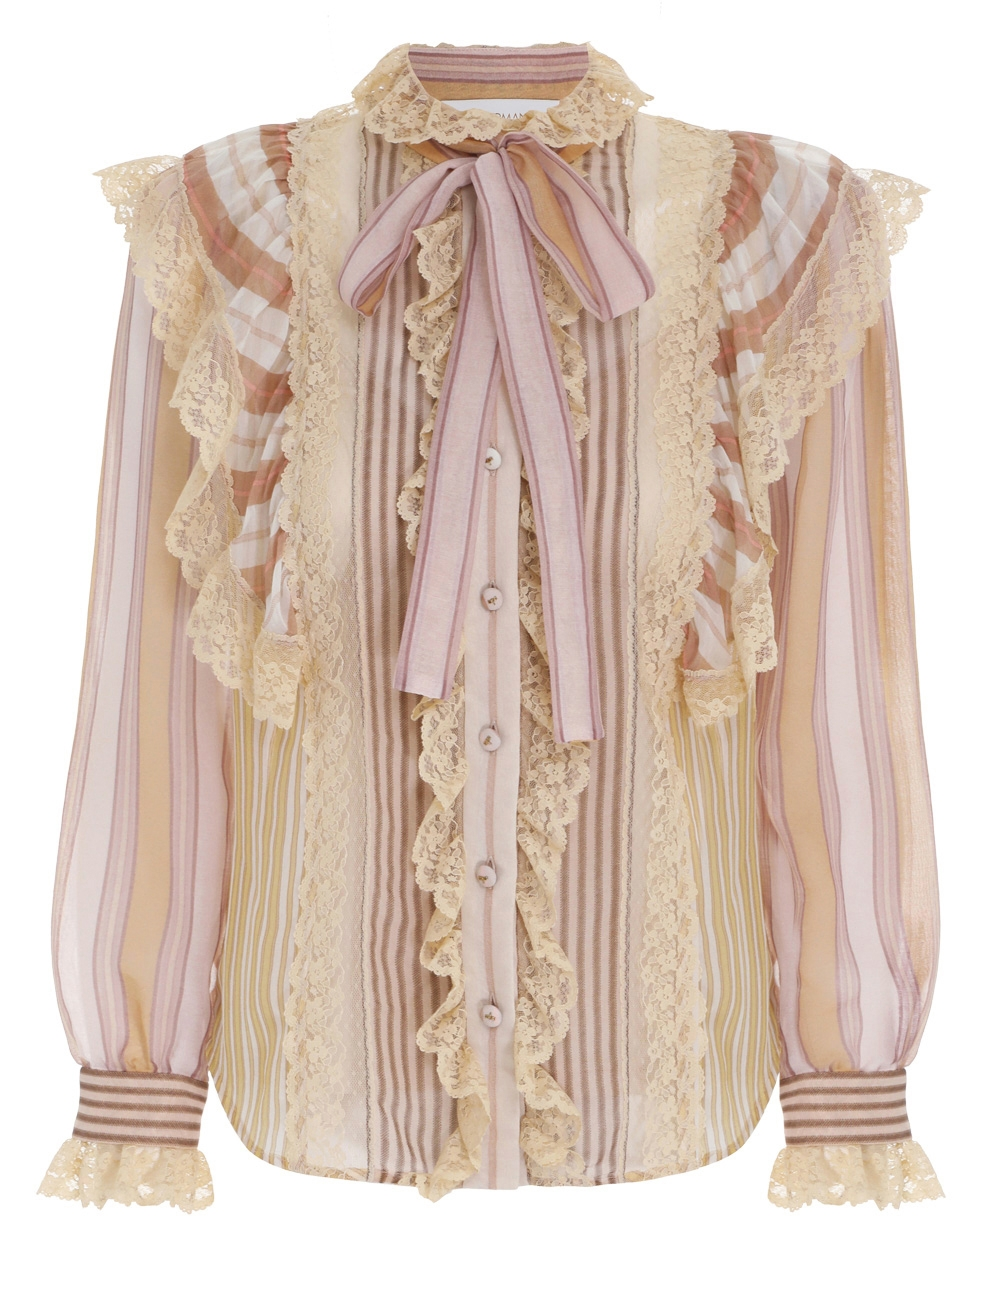 Candescent Striped Lace Blouse